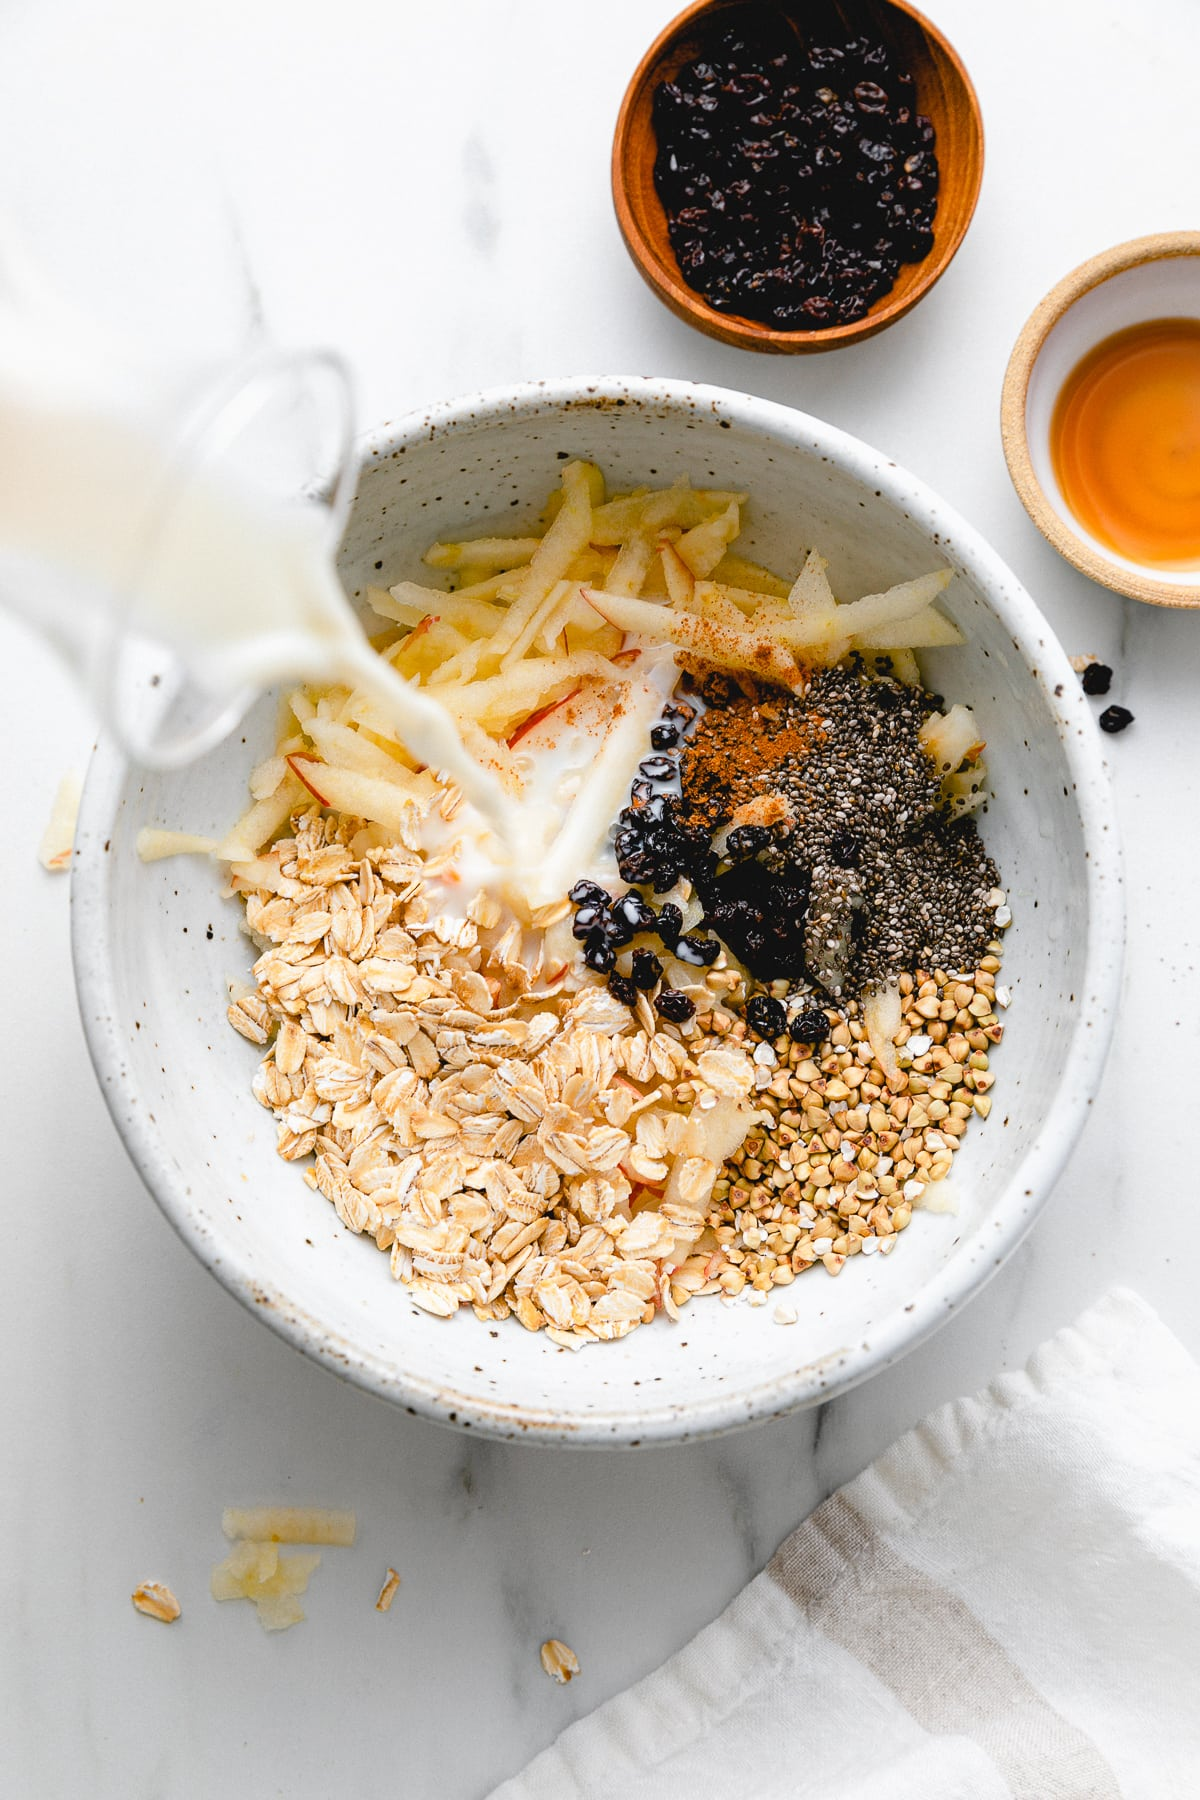 top down view showing the process of making healthy bircher muesli in a bowl.